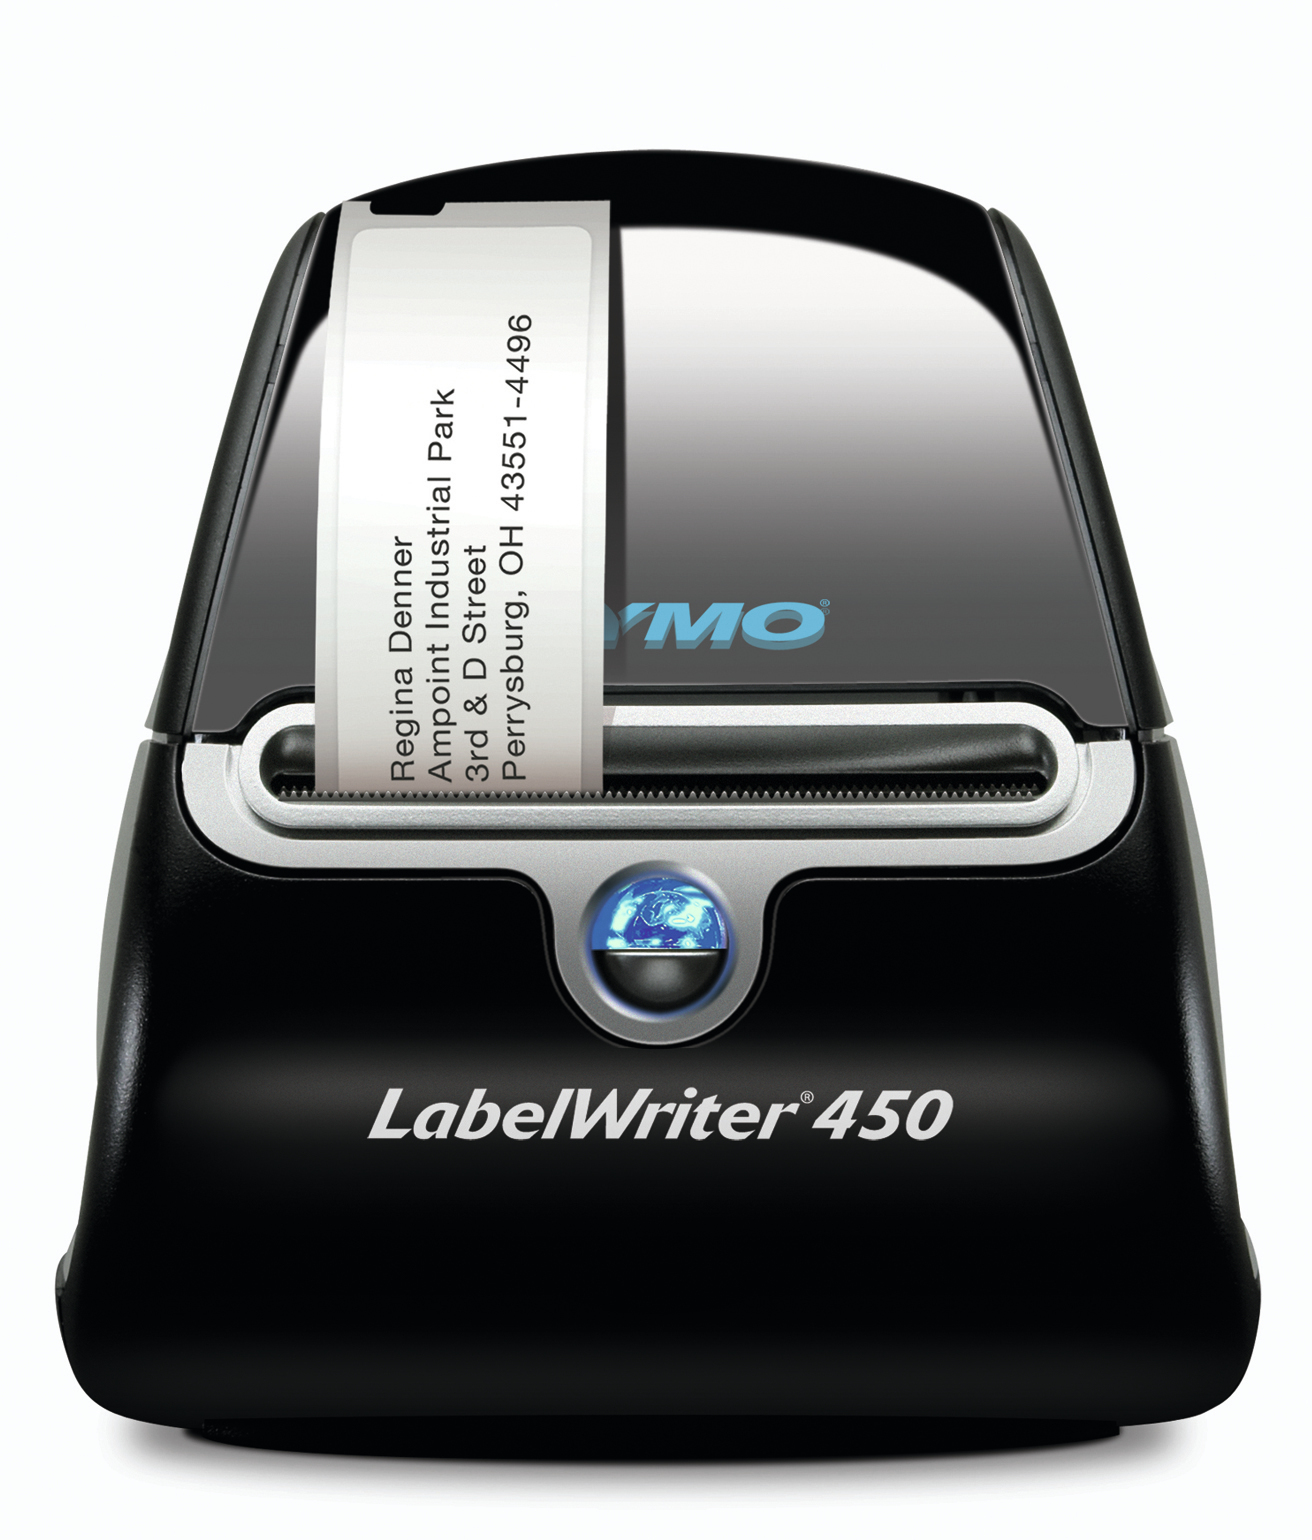 dymo labelwriter 450 label printer 600 x 300 dpi 88 in distributor wholesale stock for. Black Bedroom Furniture Sets. Home Design Ideas